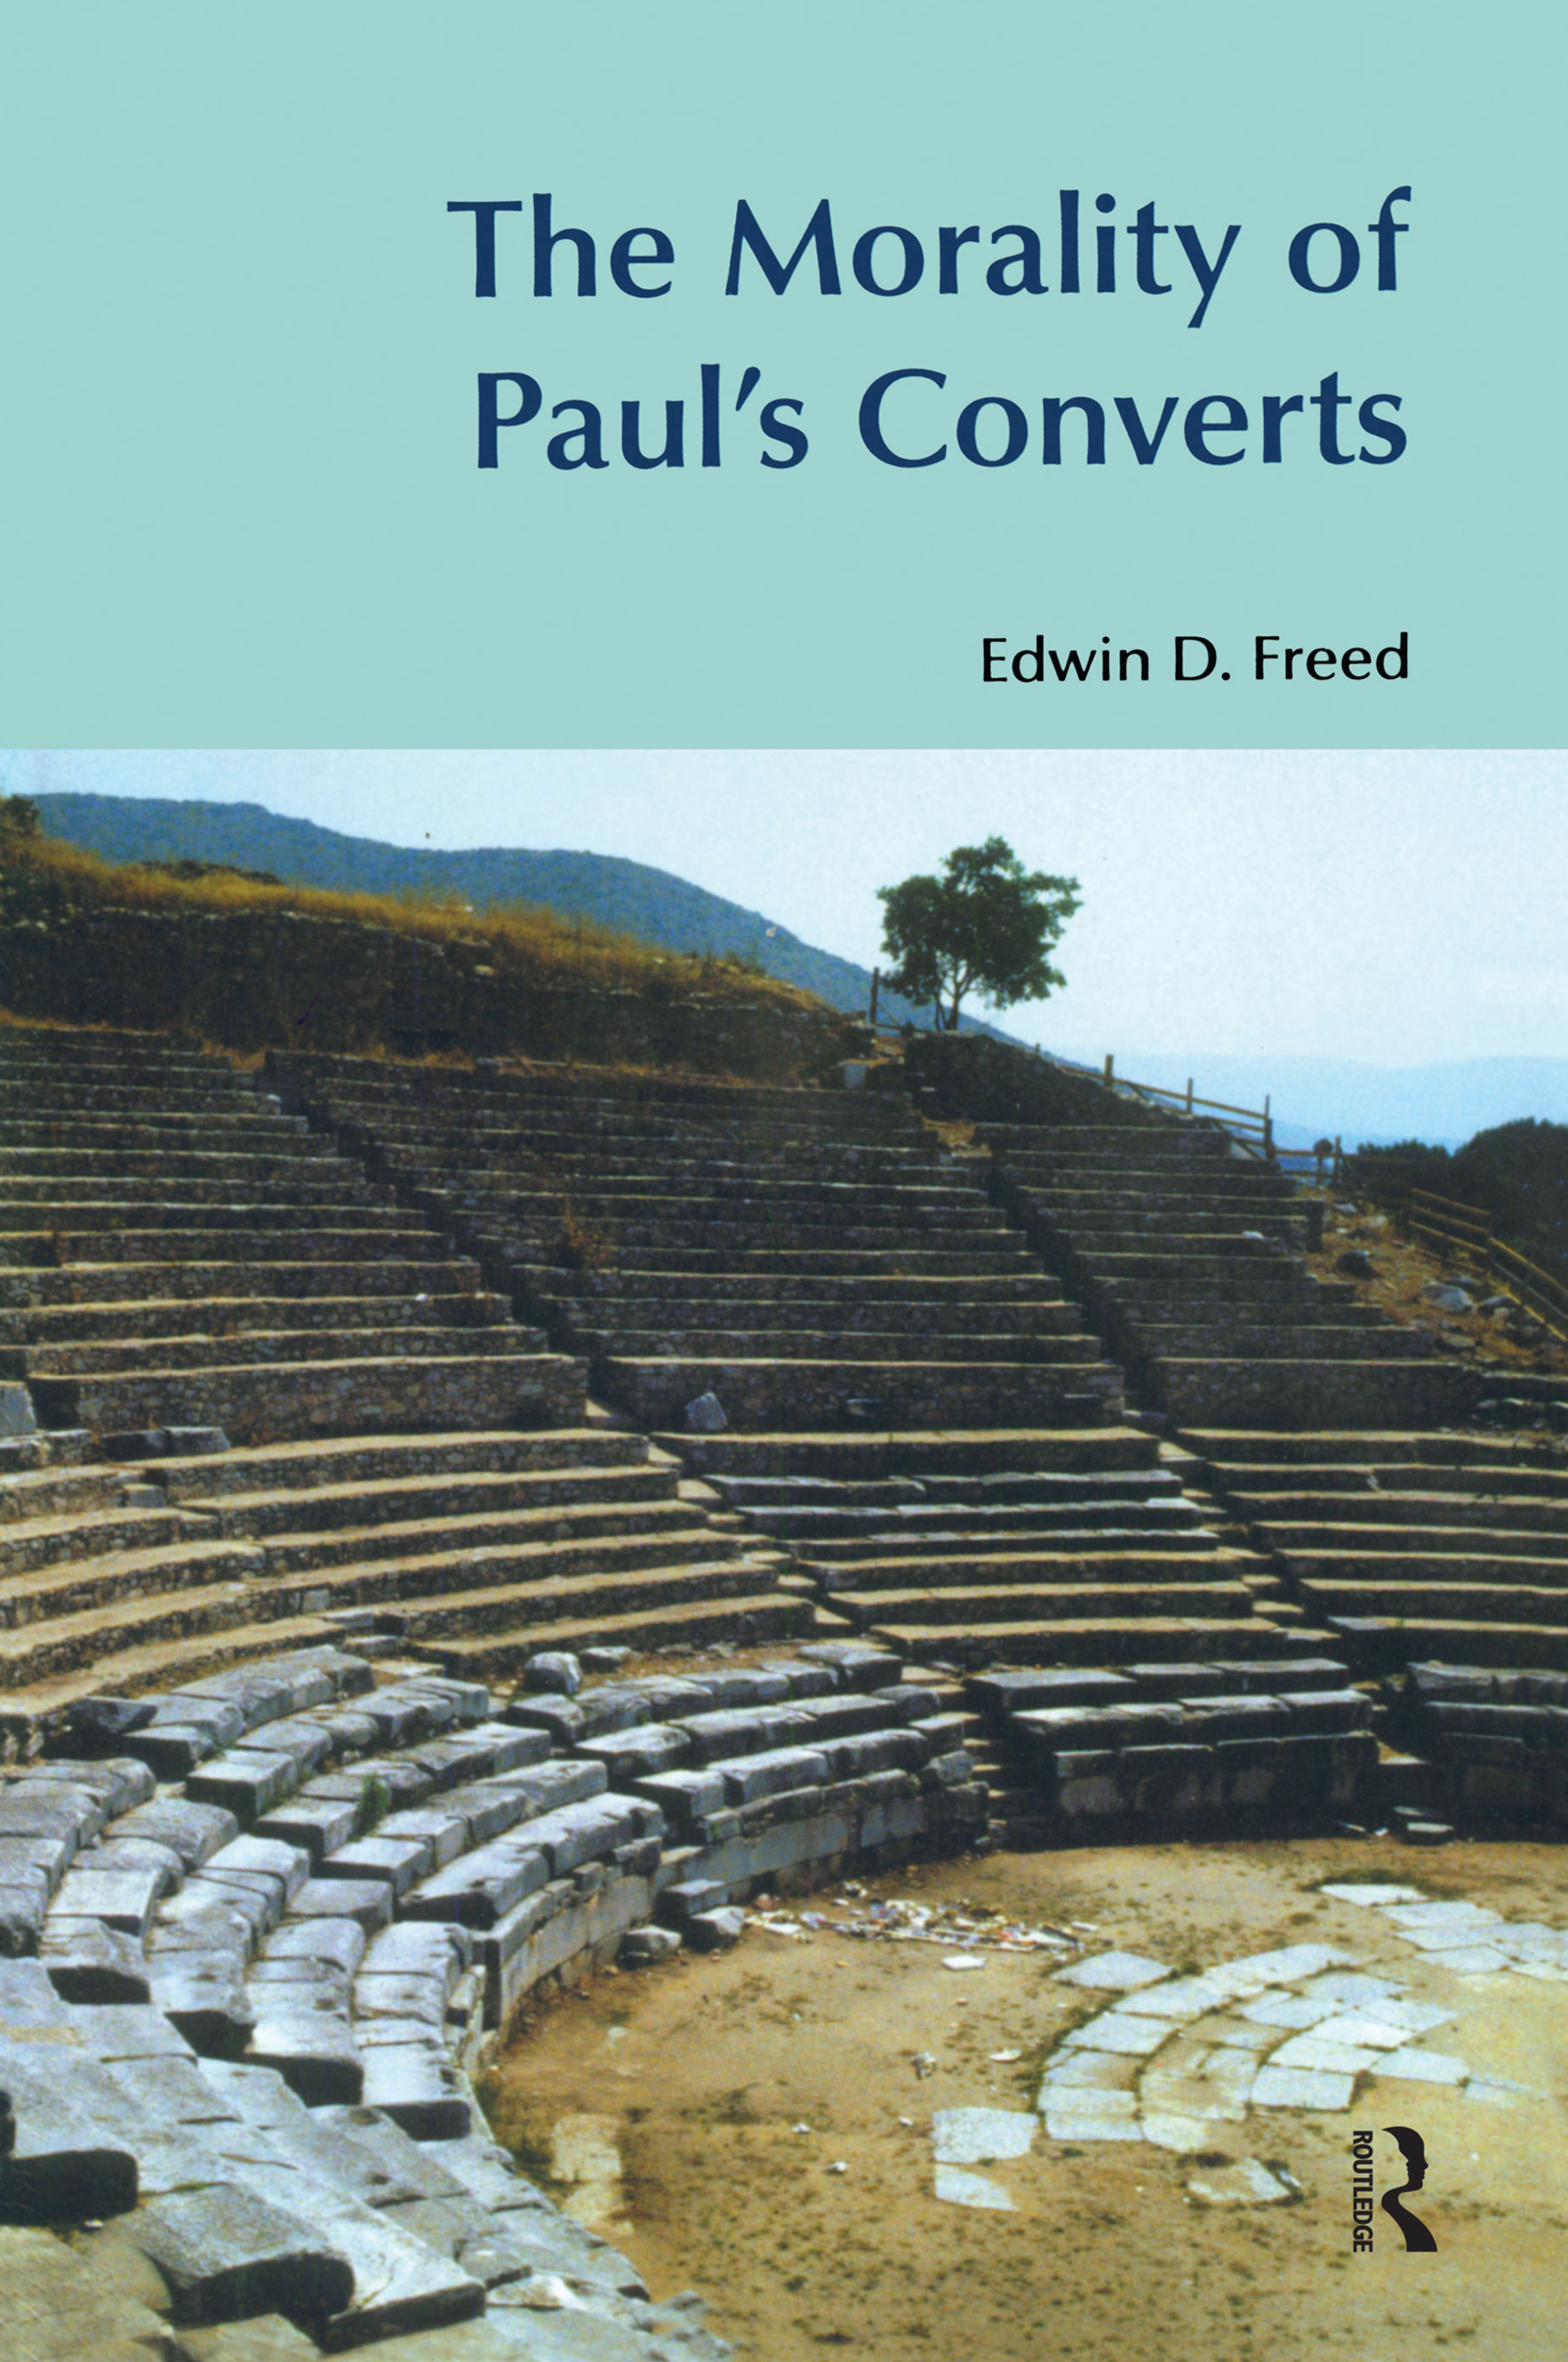 The Morality of Paul's Converts